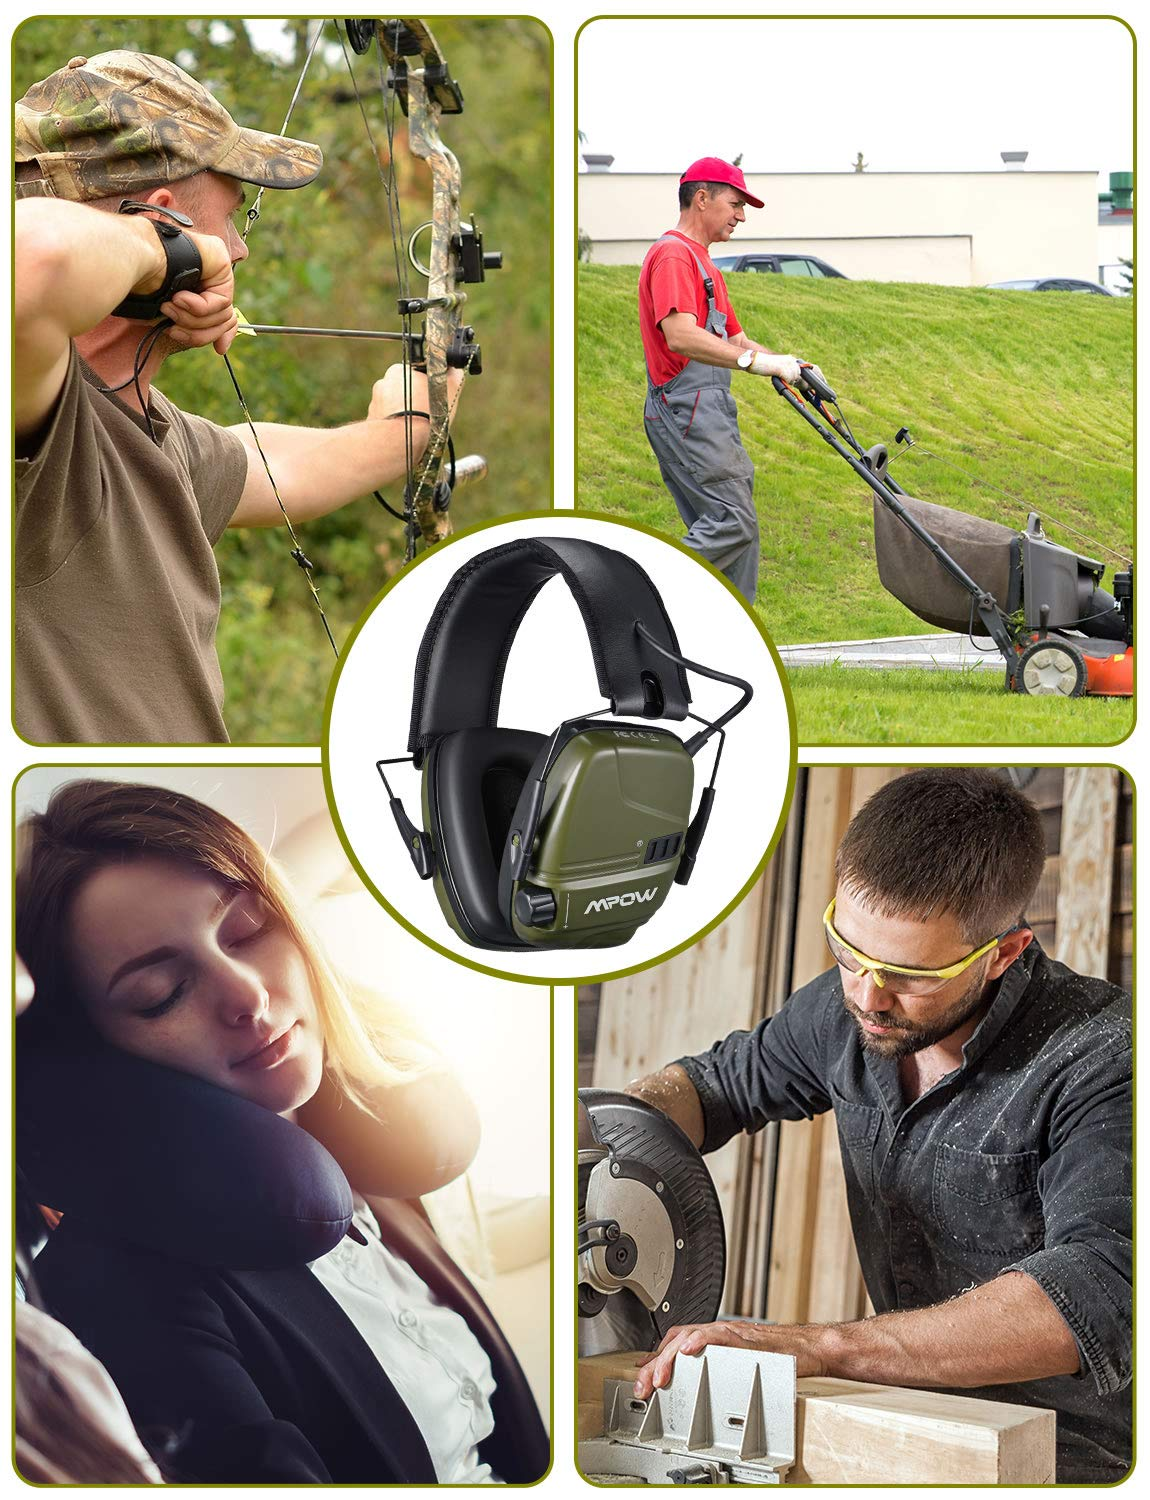 Mpow 094 Electronic Shooting Ear Muffs, Rechargeable SNR 26dB Active Noise Reduction Muffs, Stereo Sound Amplification with Dual Mic, Ear Protection for Shooting Hunting Season, Mowing, Woodworking by Mpow (Image #6)